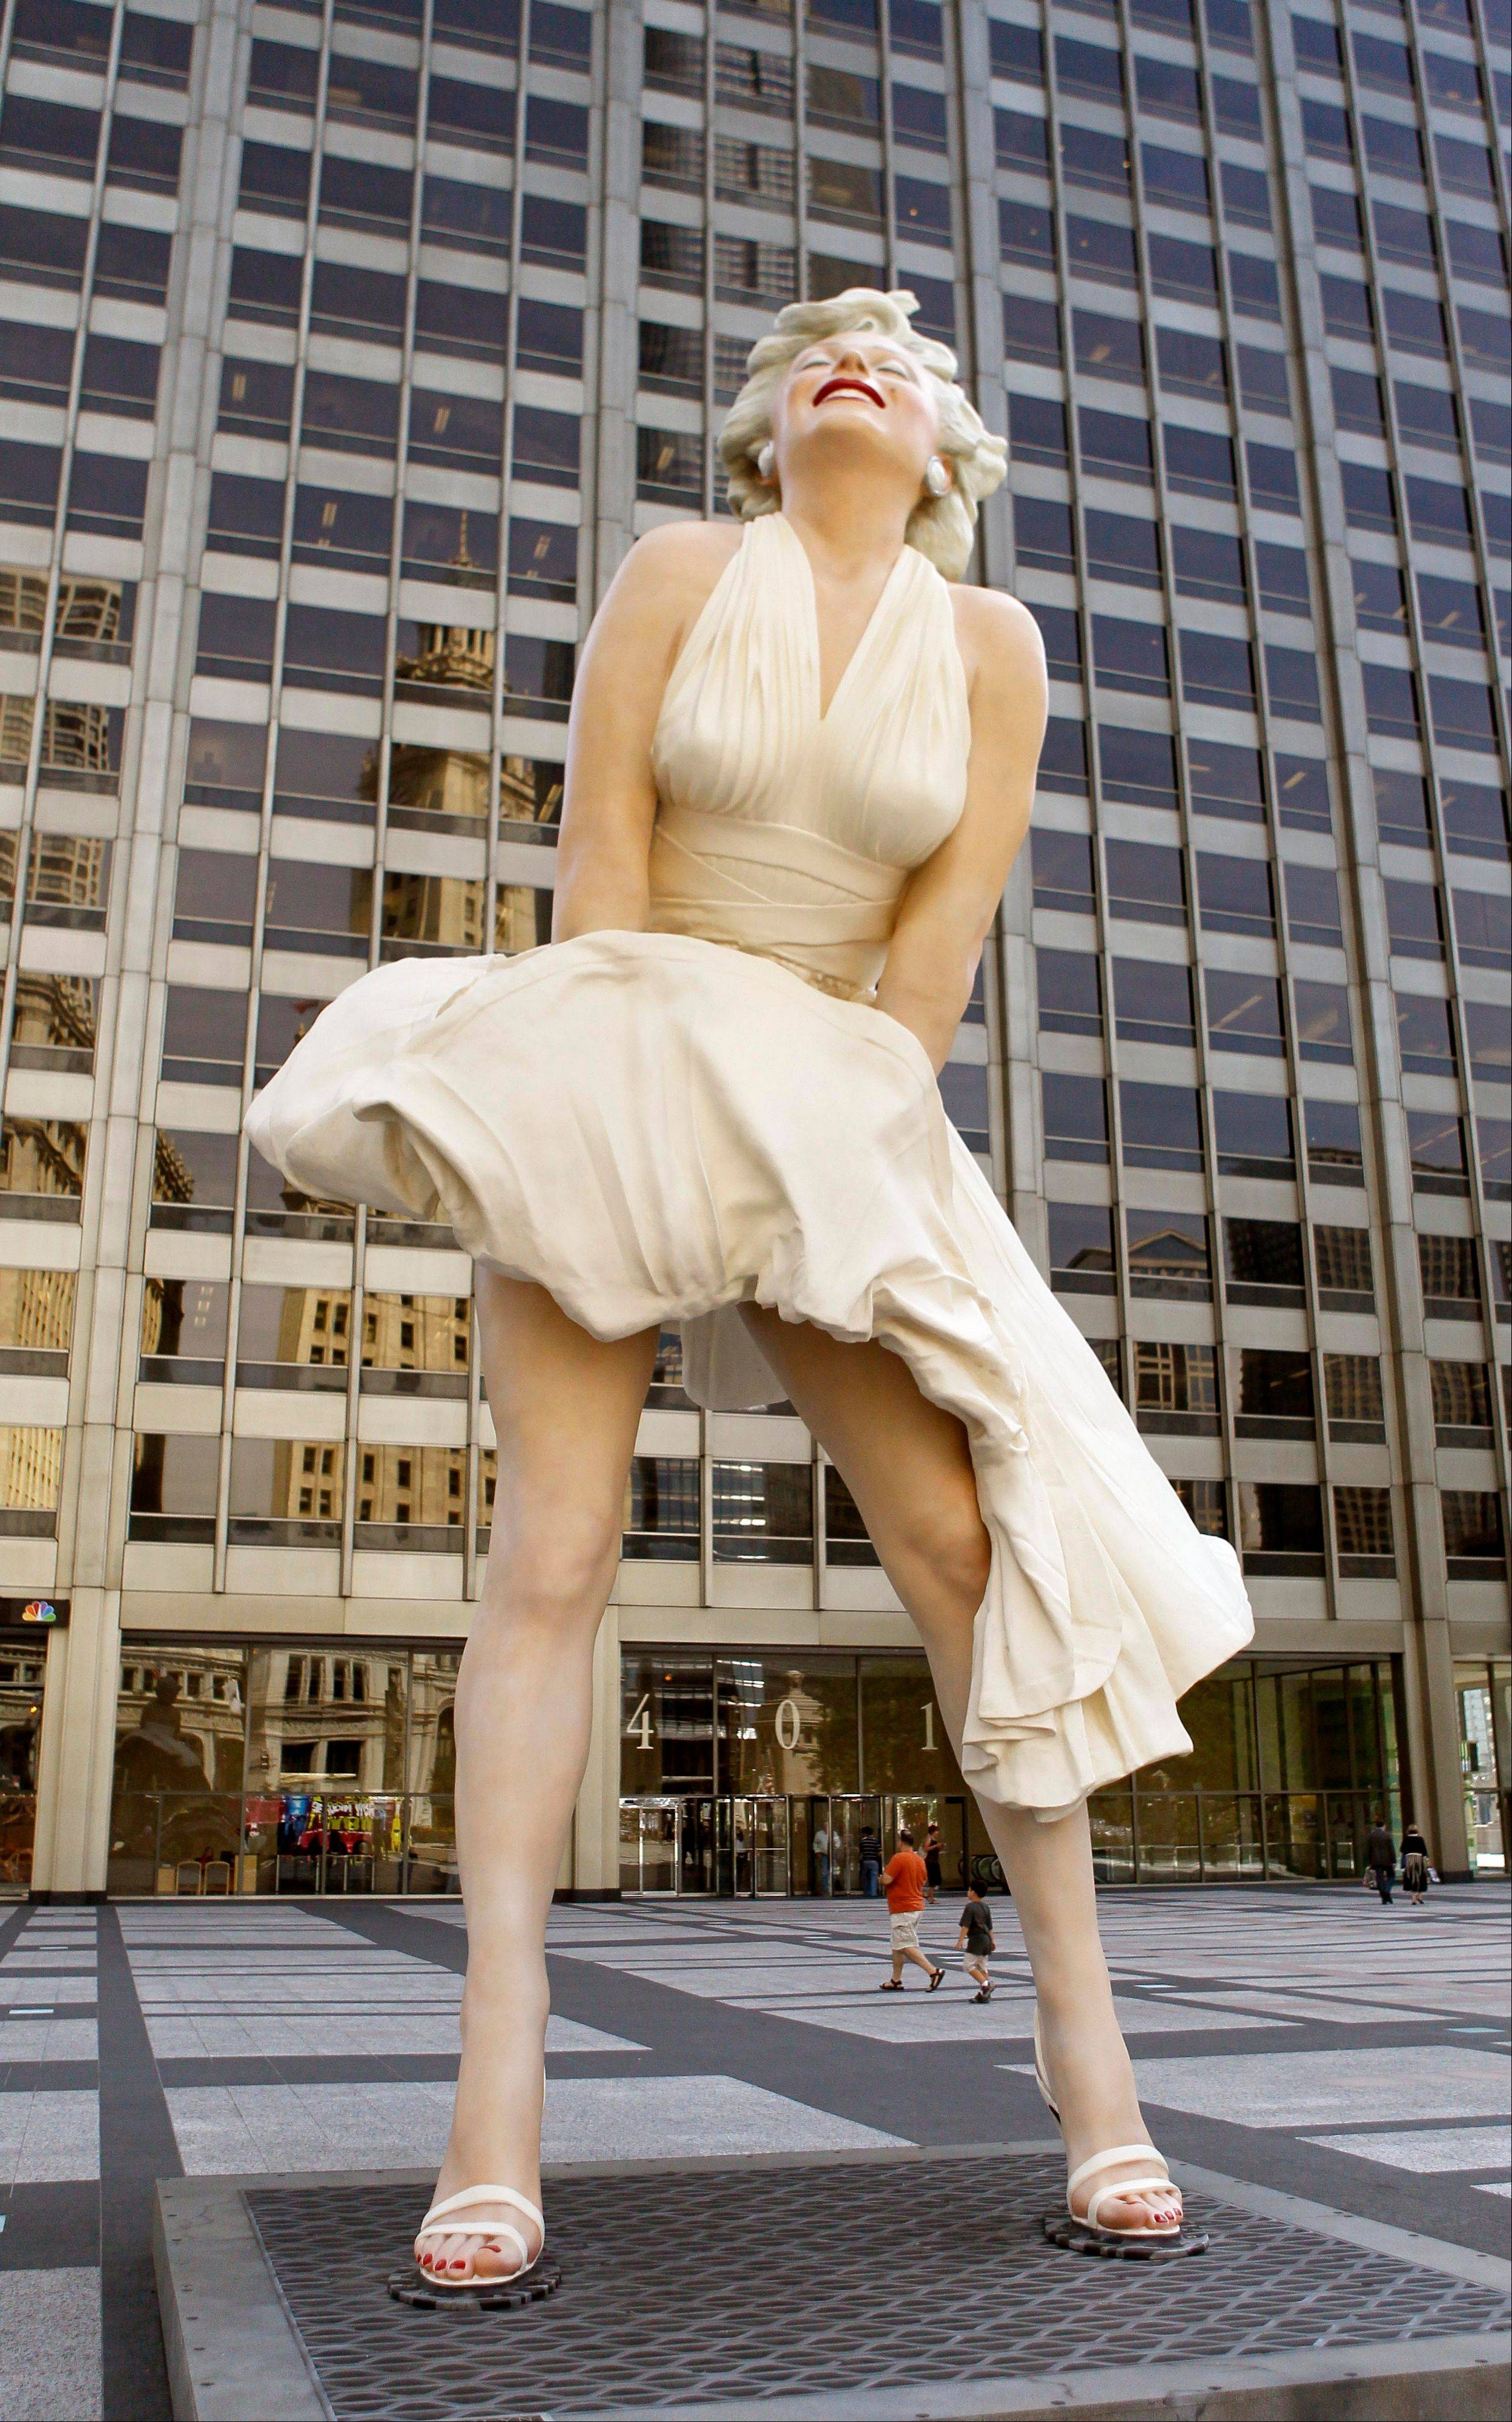 Seward Johnson's 26-foot-tall sculpture of Marilyn Monroe, in her most famous windblown pose, stands on Michigan Ave. Friday, July 15, 2011 in Chicago.